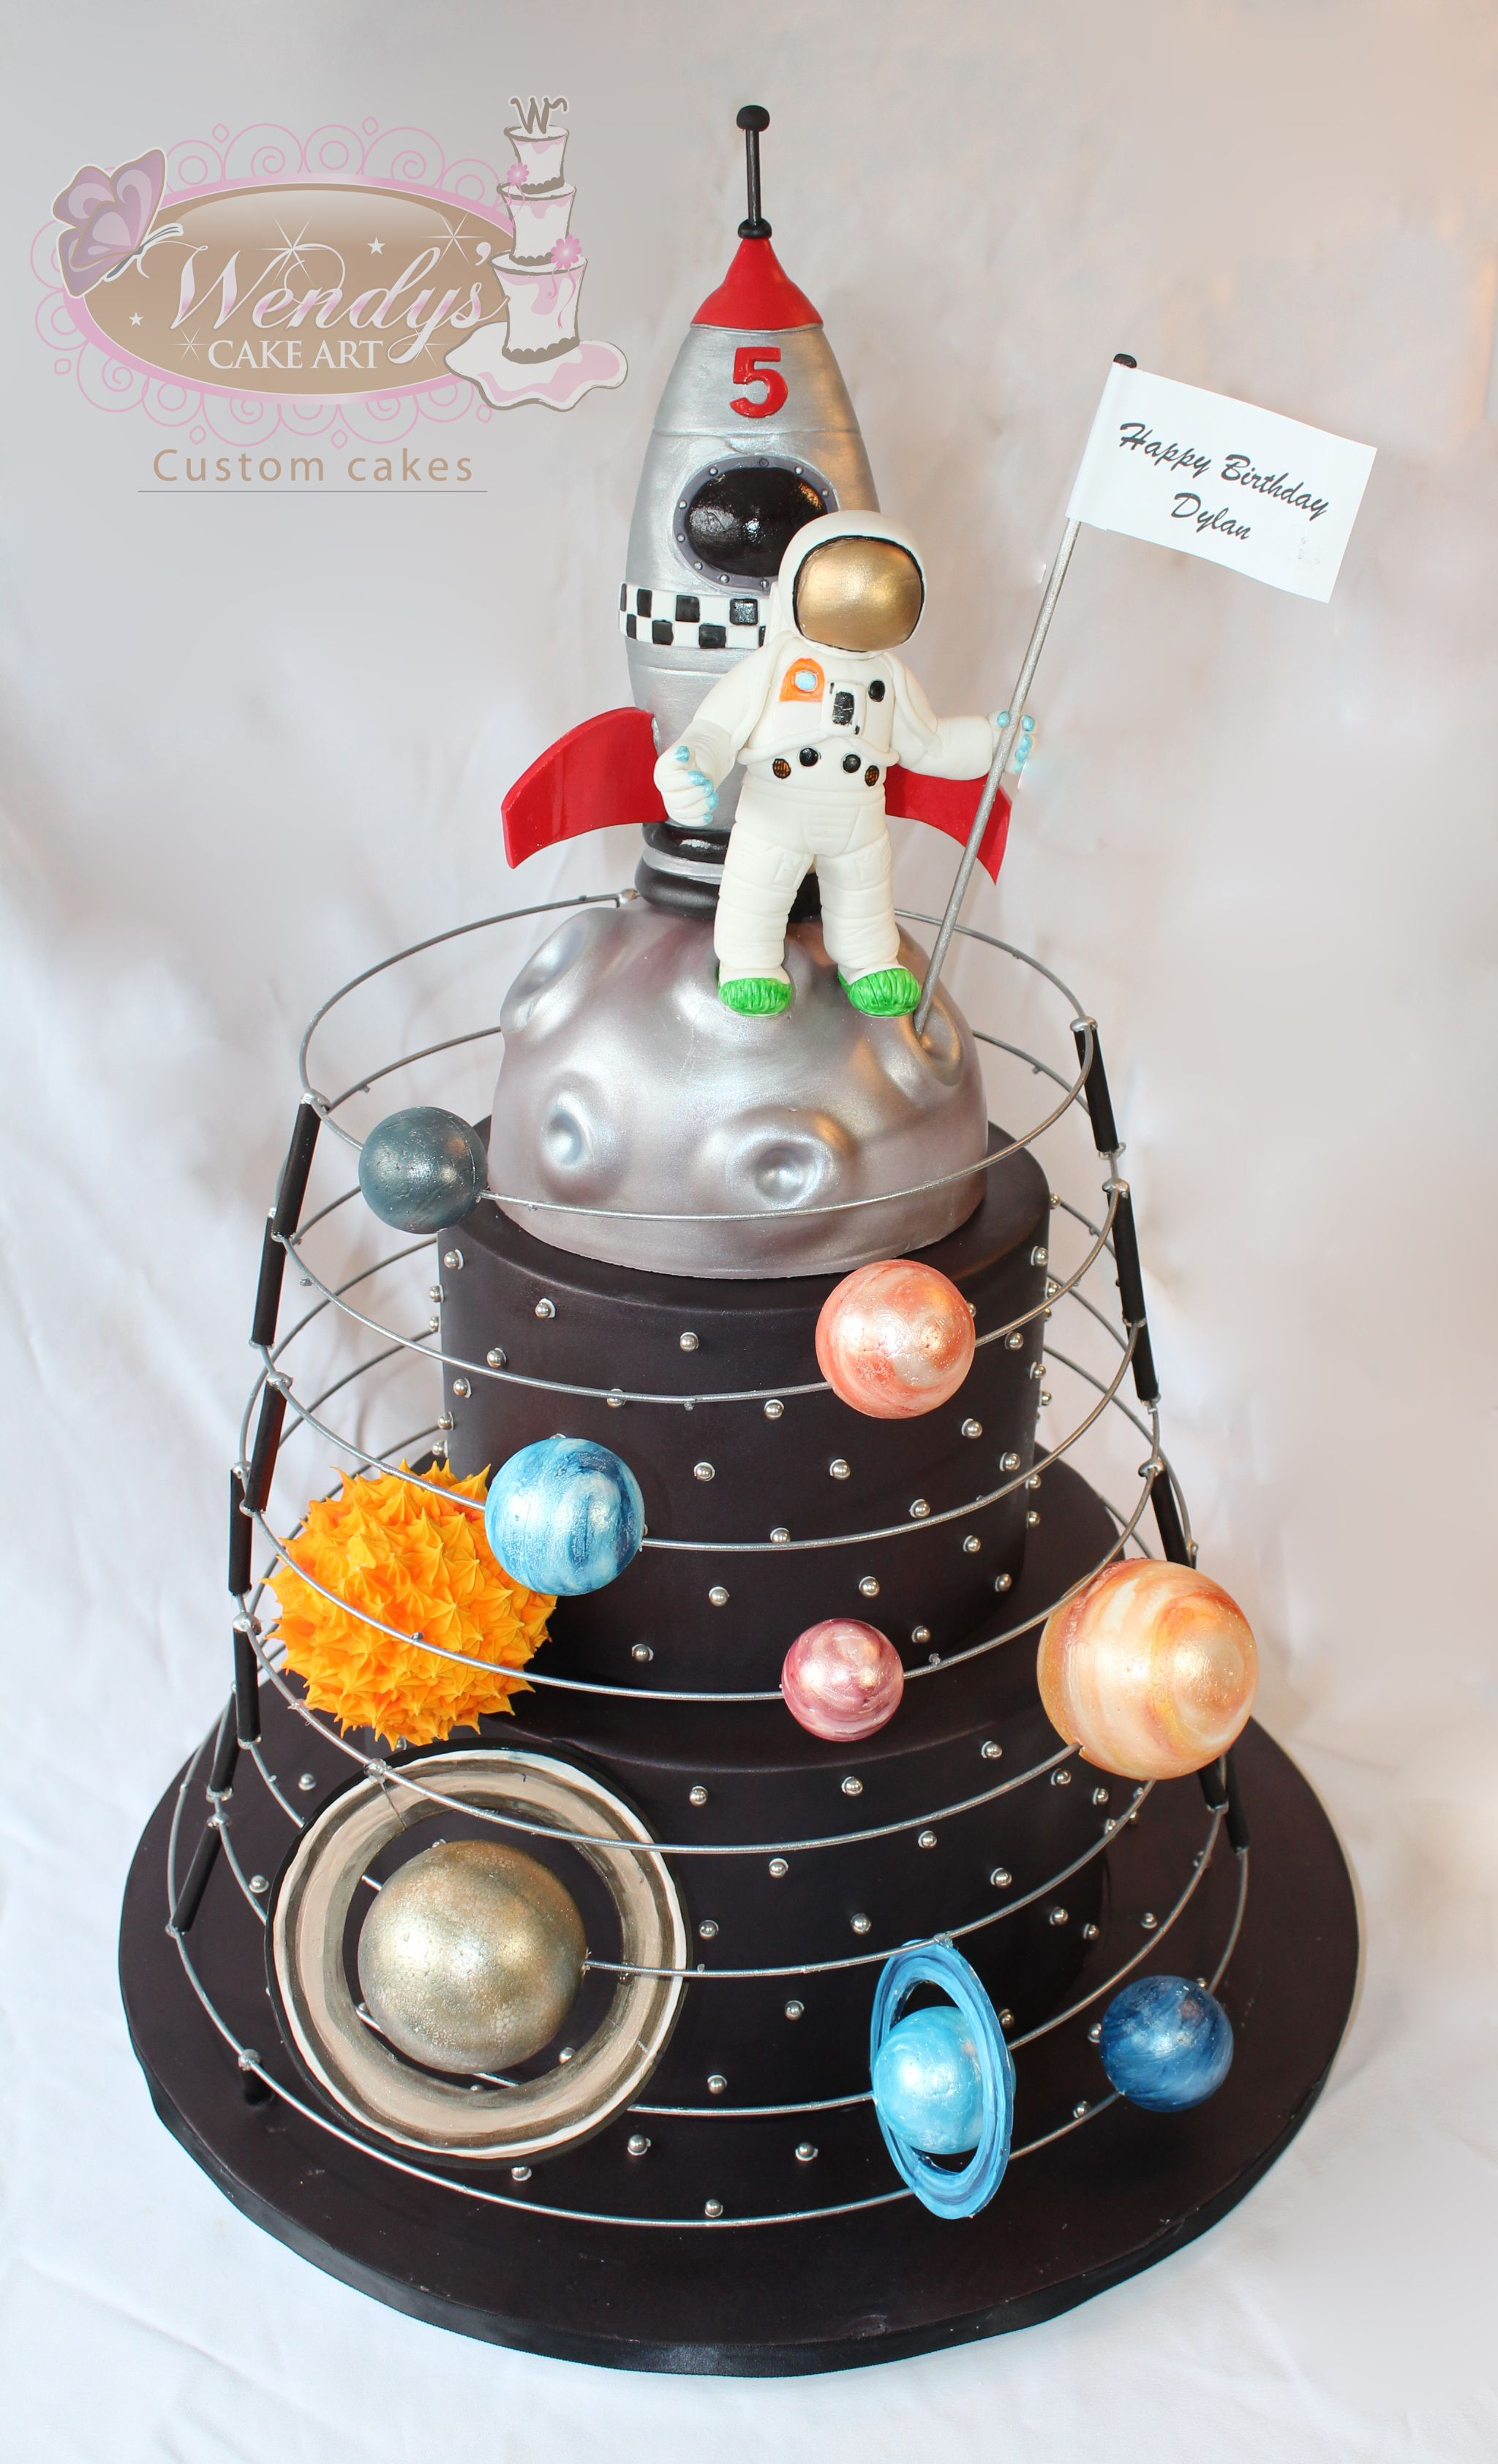 Wendyscakeart Solar System Cake With Astronaut And